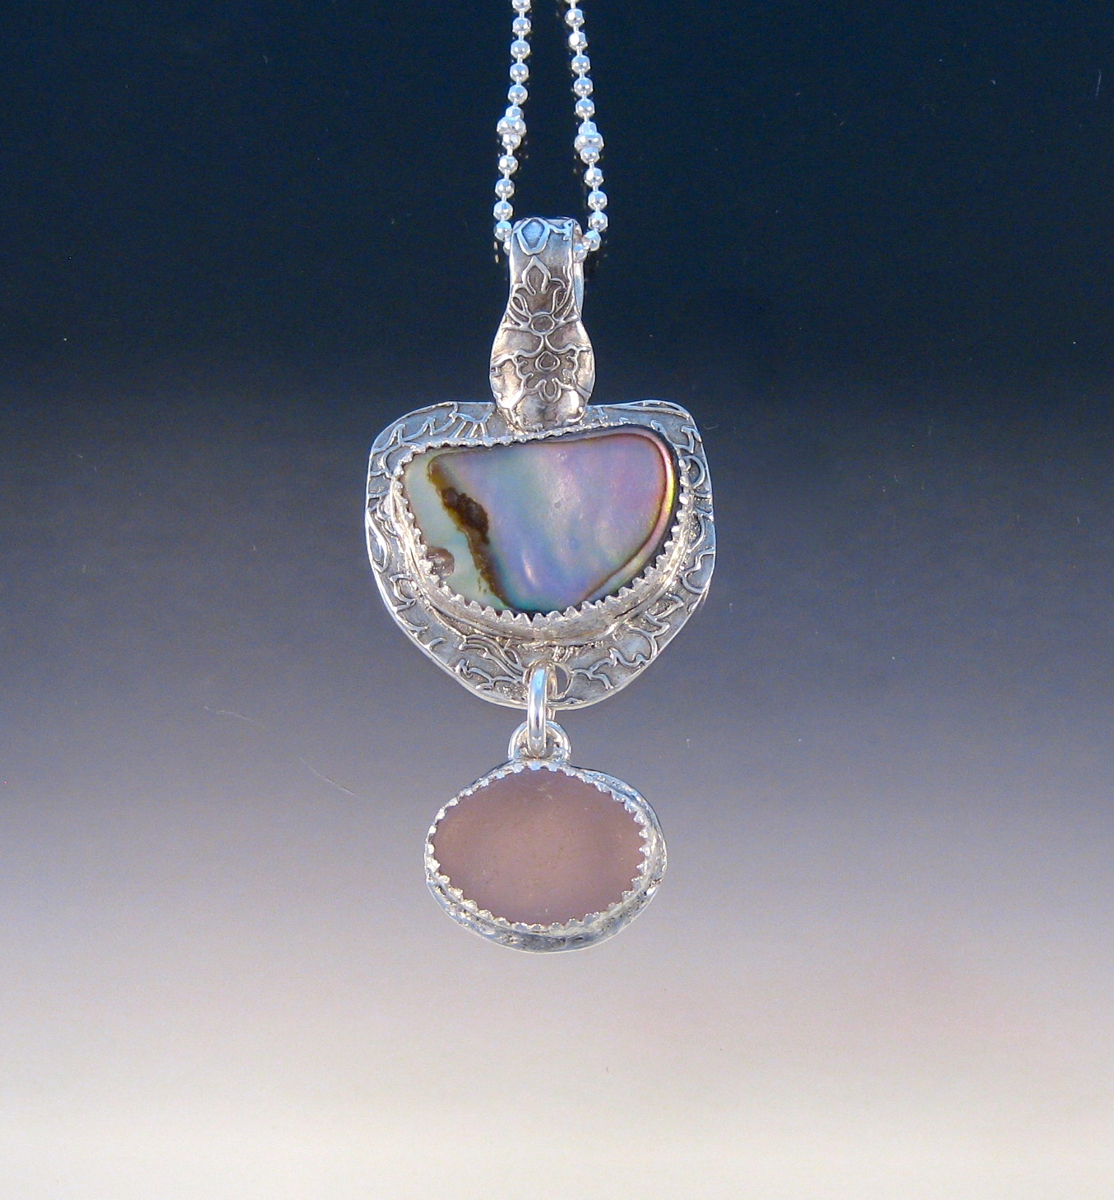 P5527 - Glowing abalone and lavender sea glass (large view)